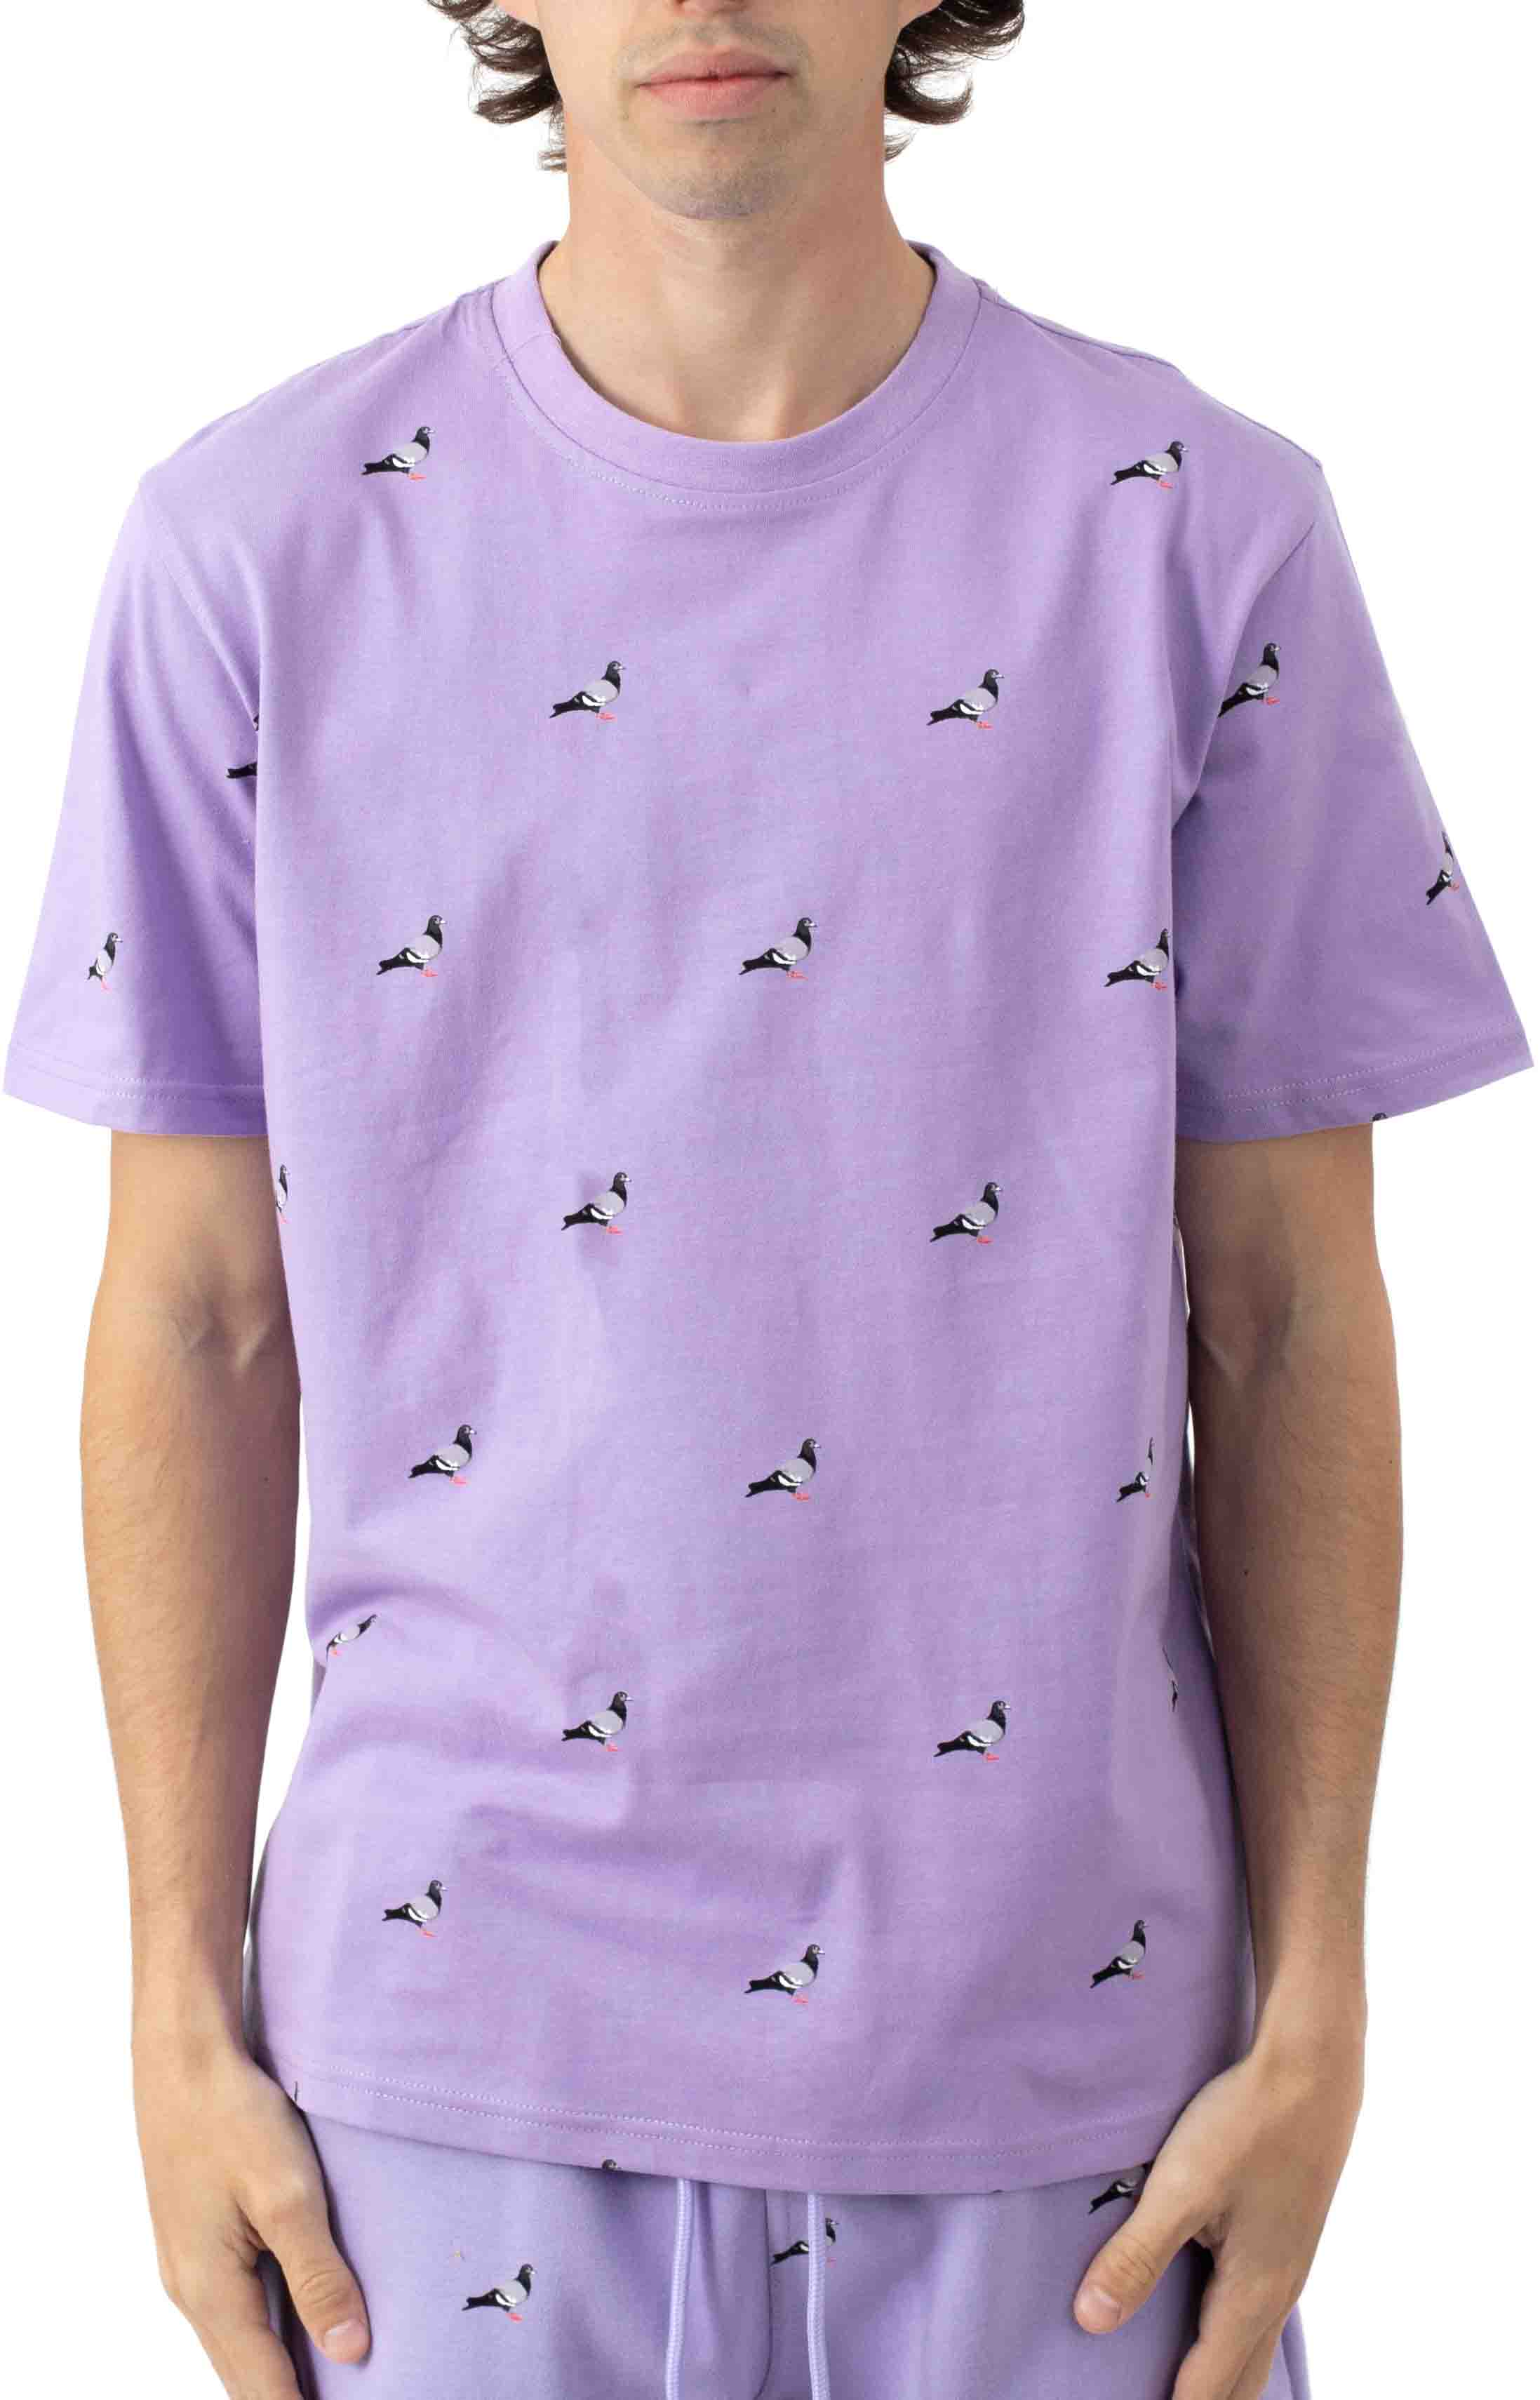 All Over Pigeon T-Shirt - Lilac